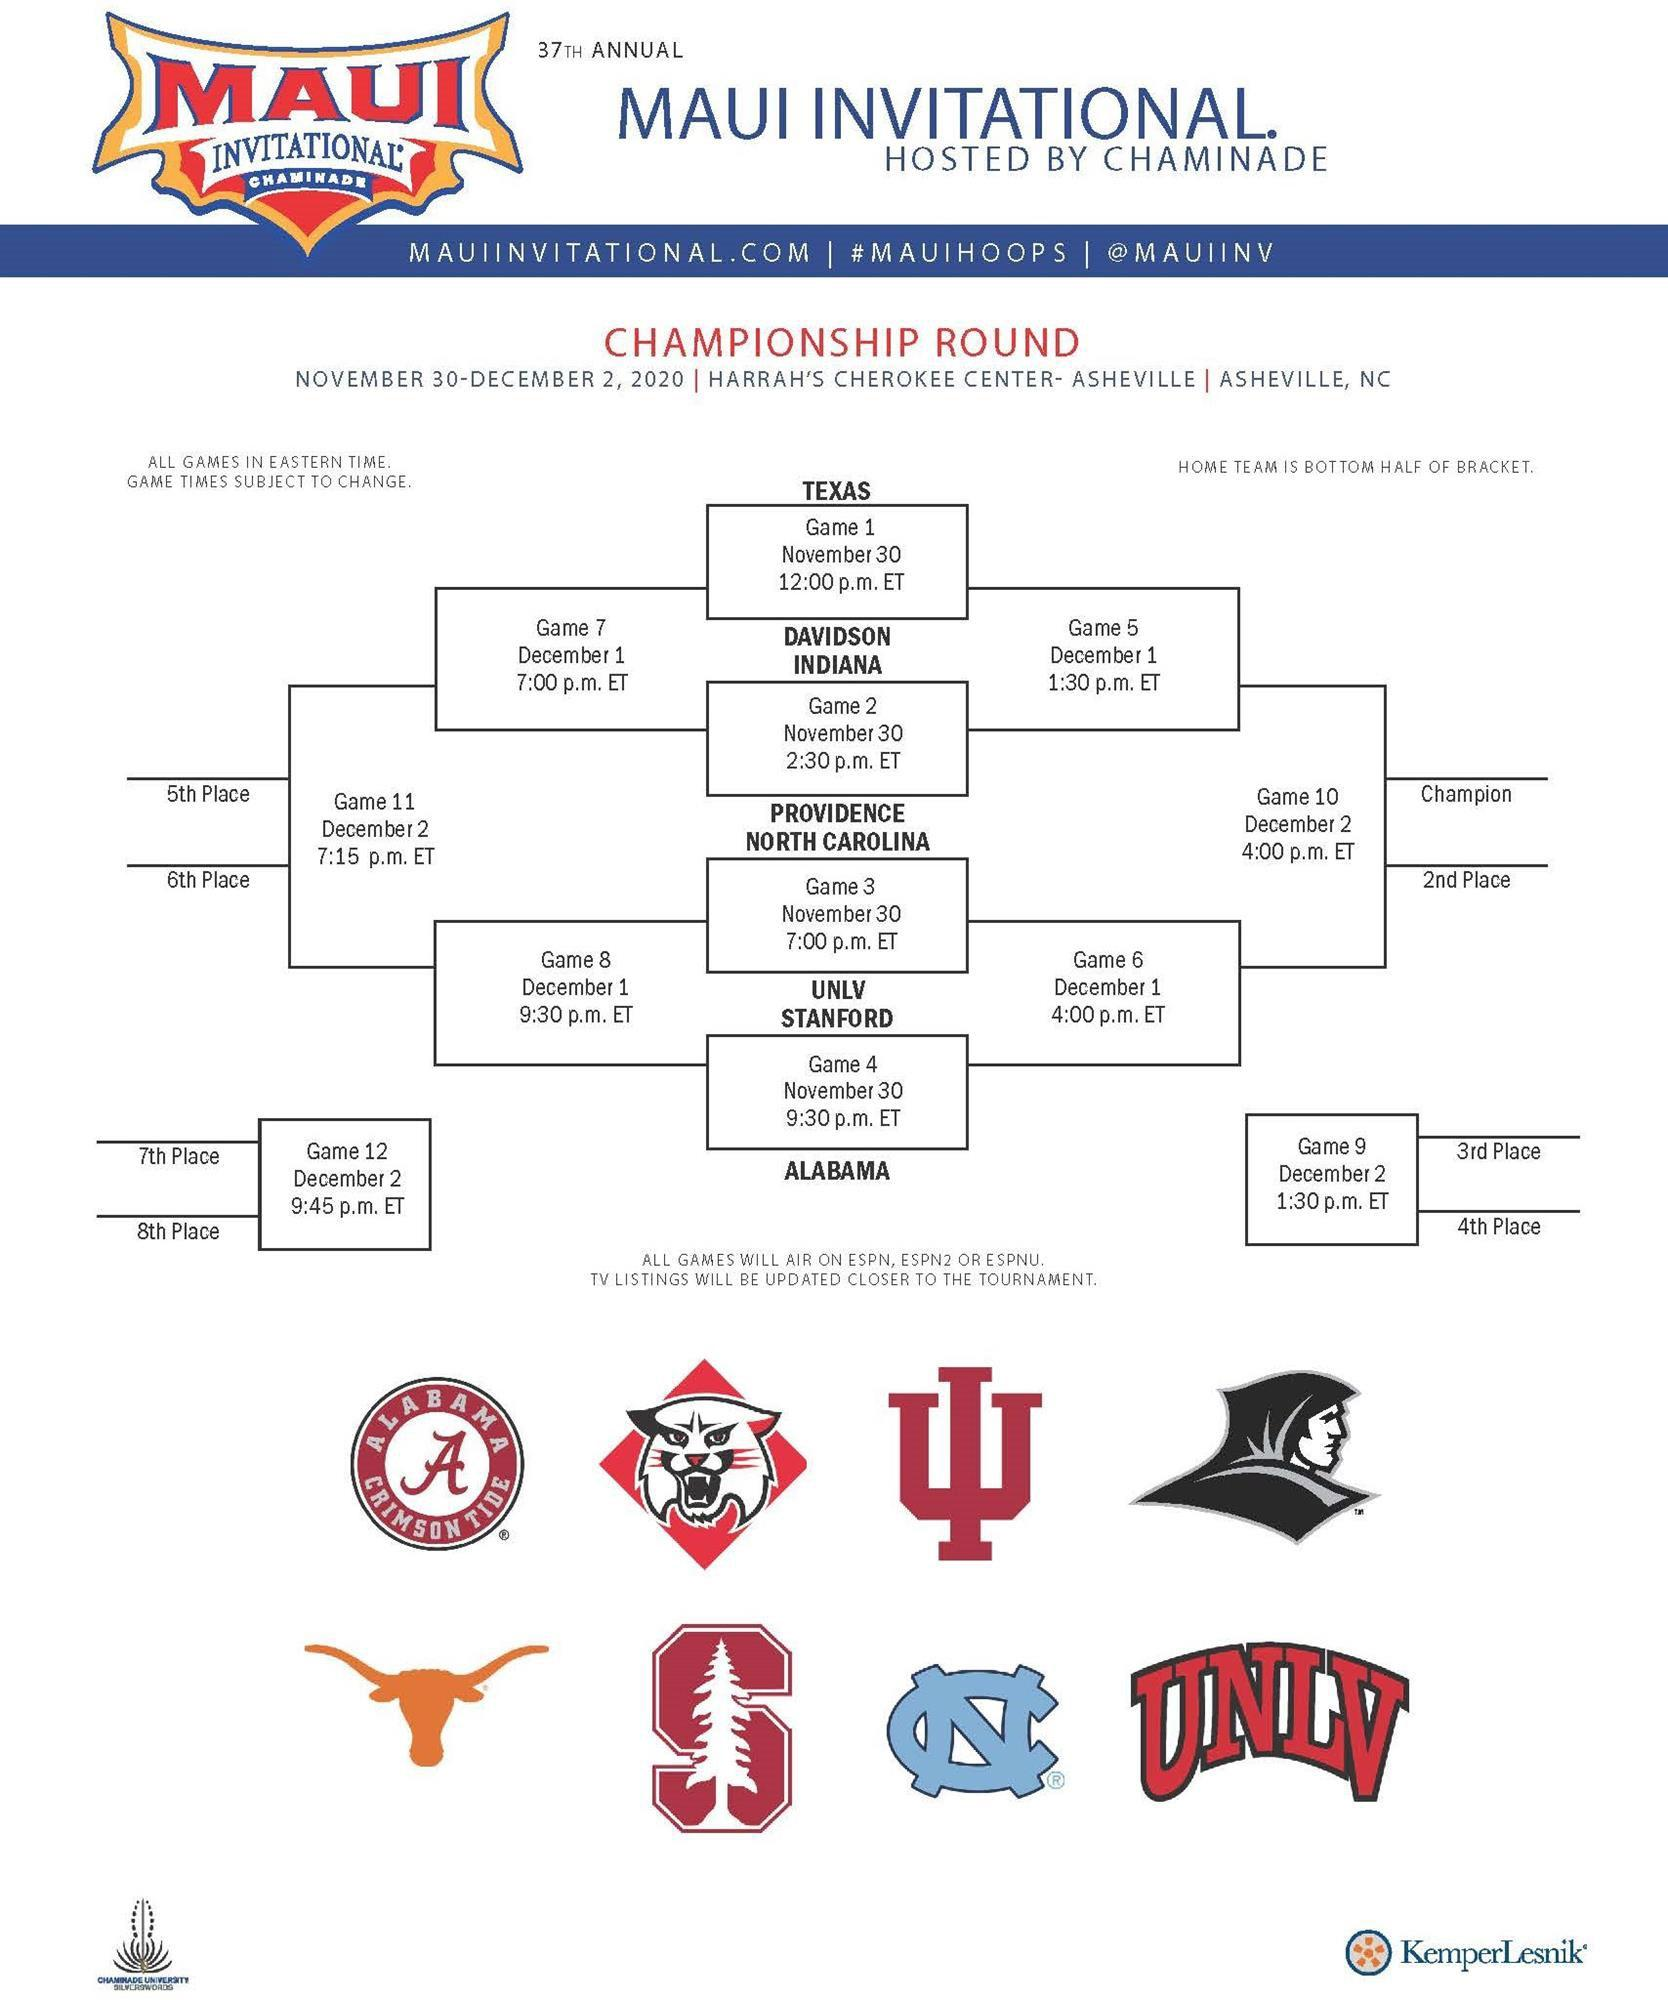 Here is the 2020 Maui Invitational bracket